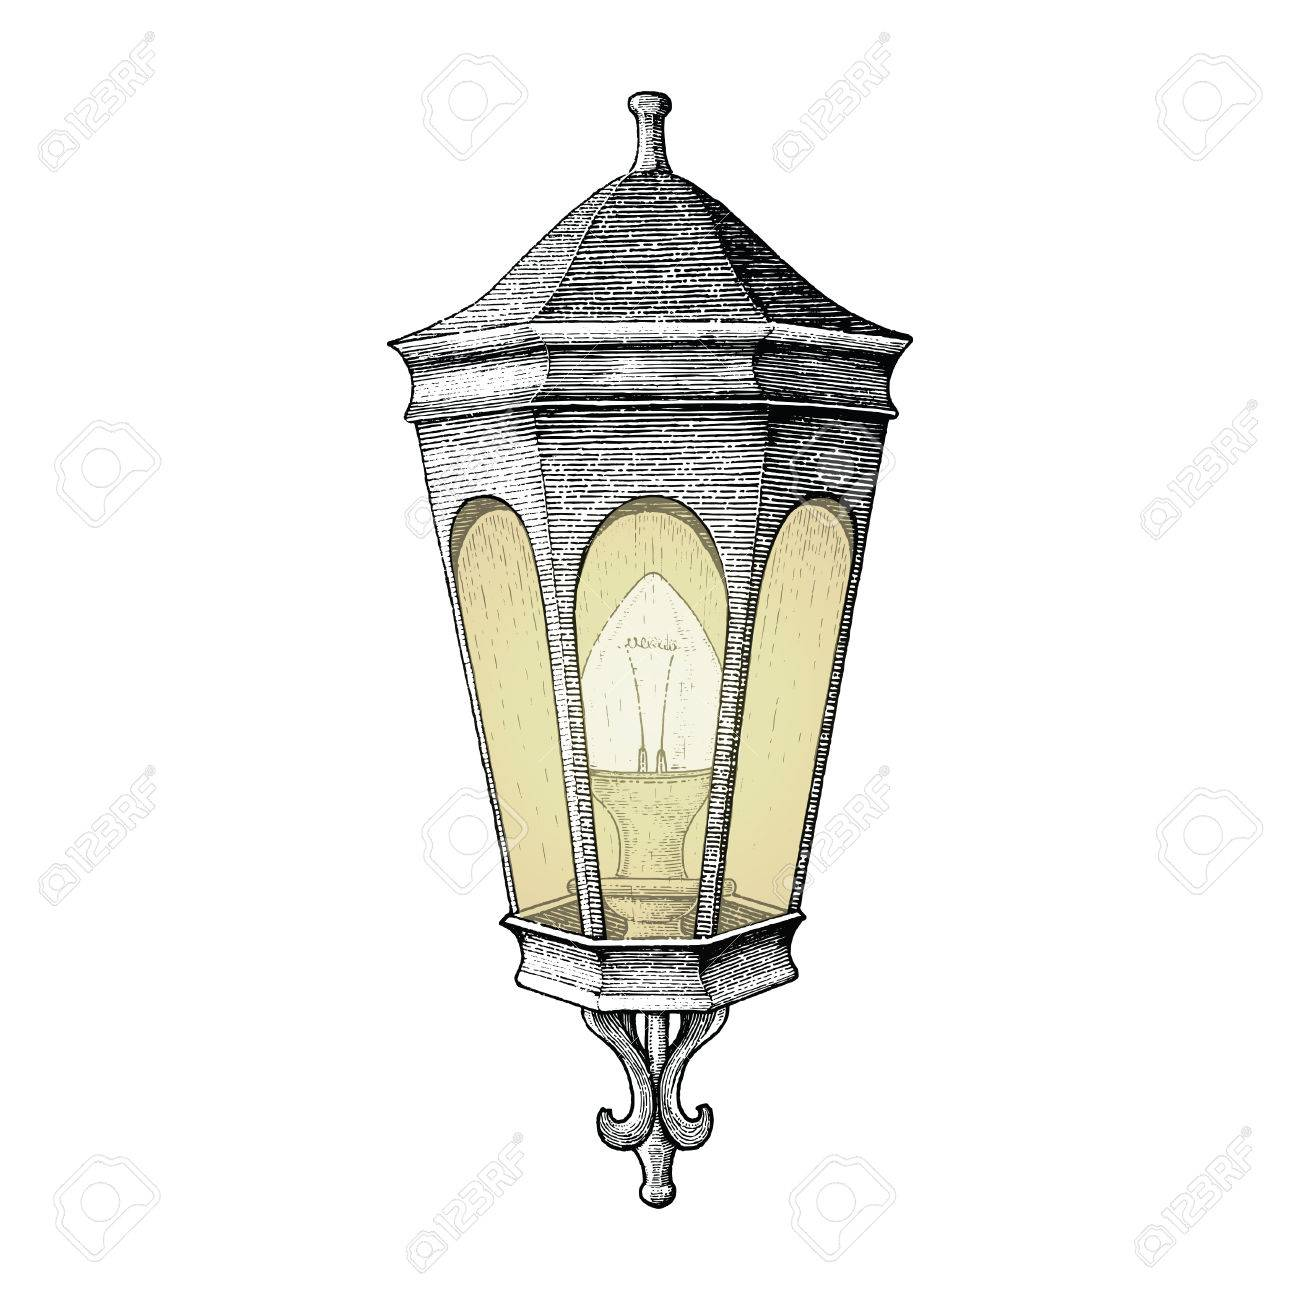 Awesome Vector   Vintage Road Lamp Hand Drawing Engraving Style